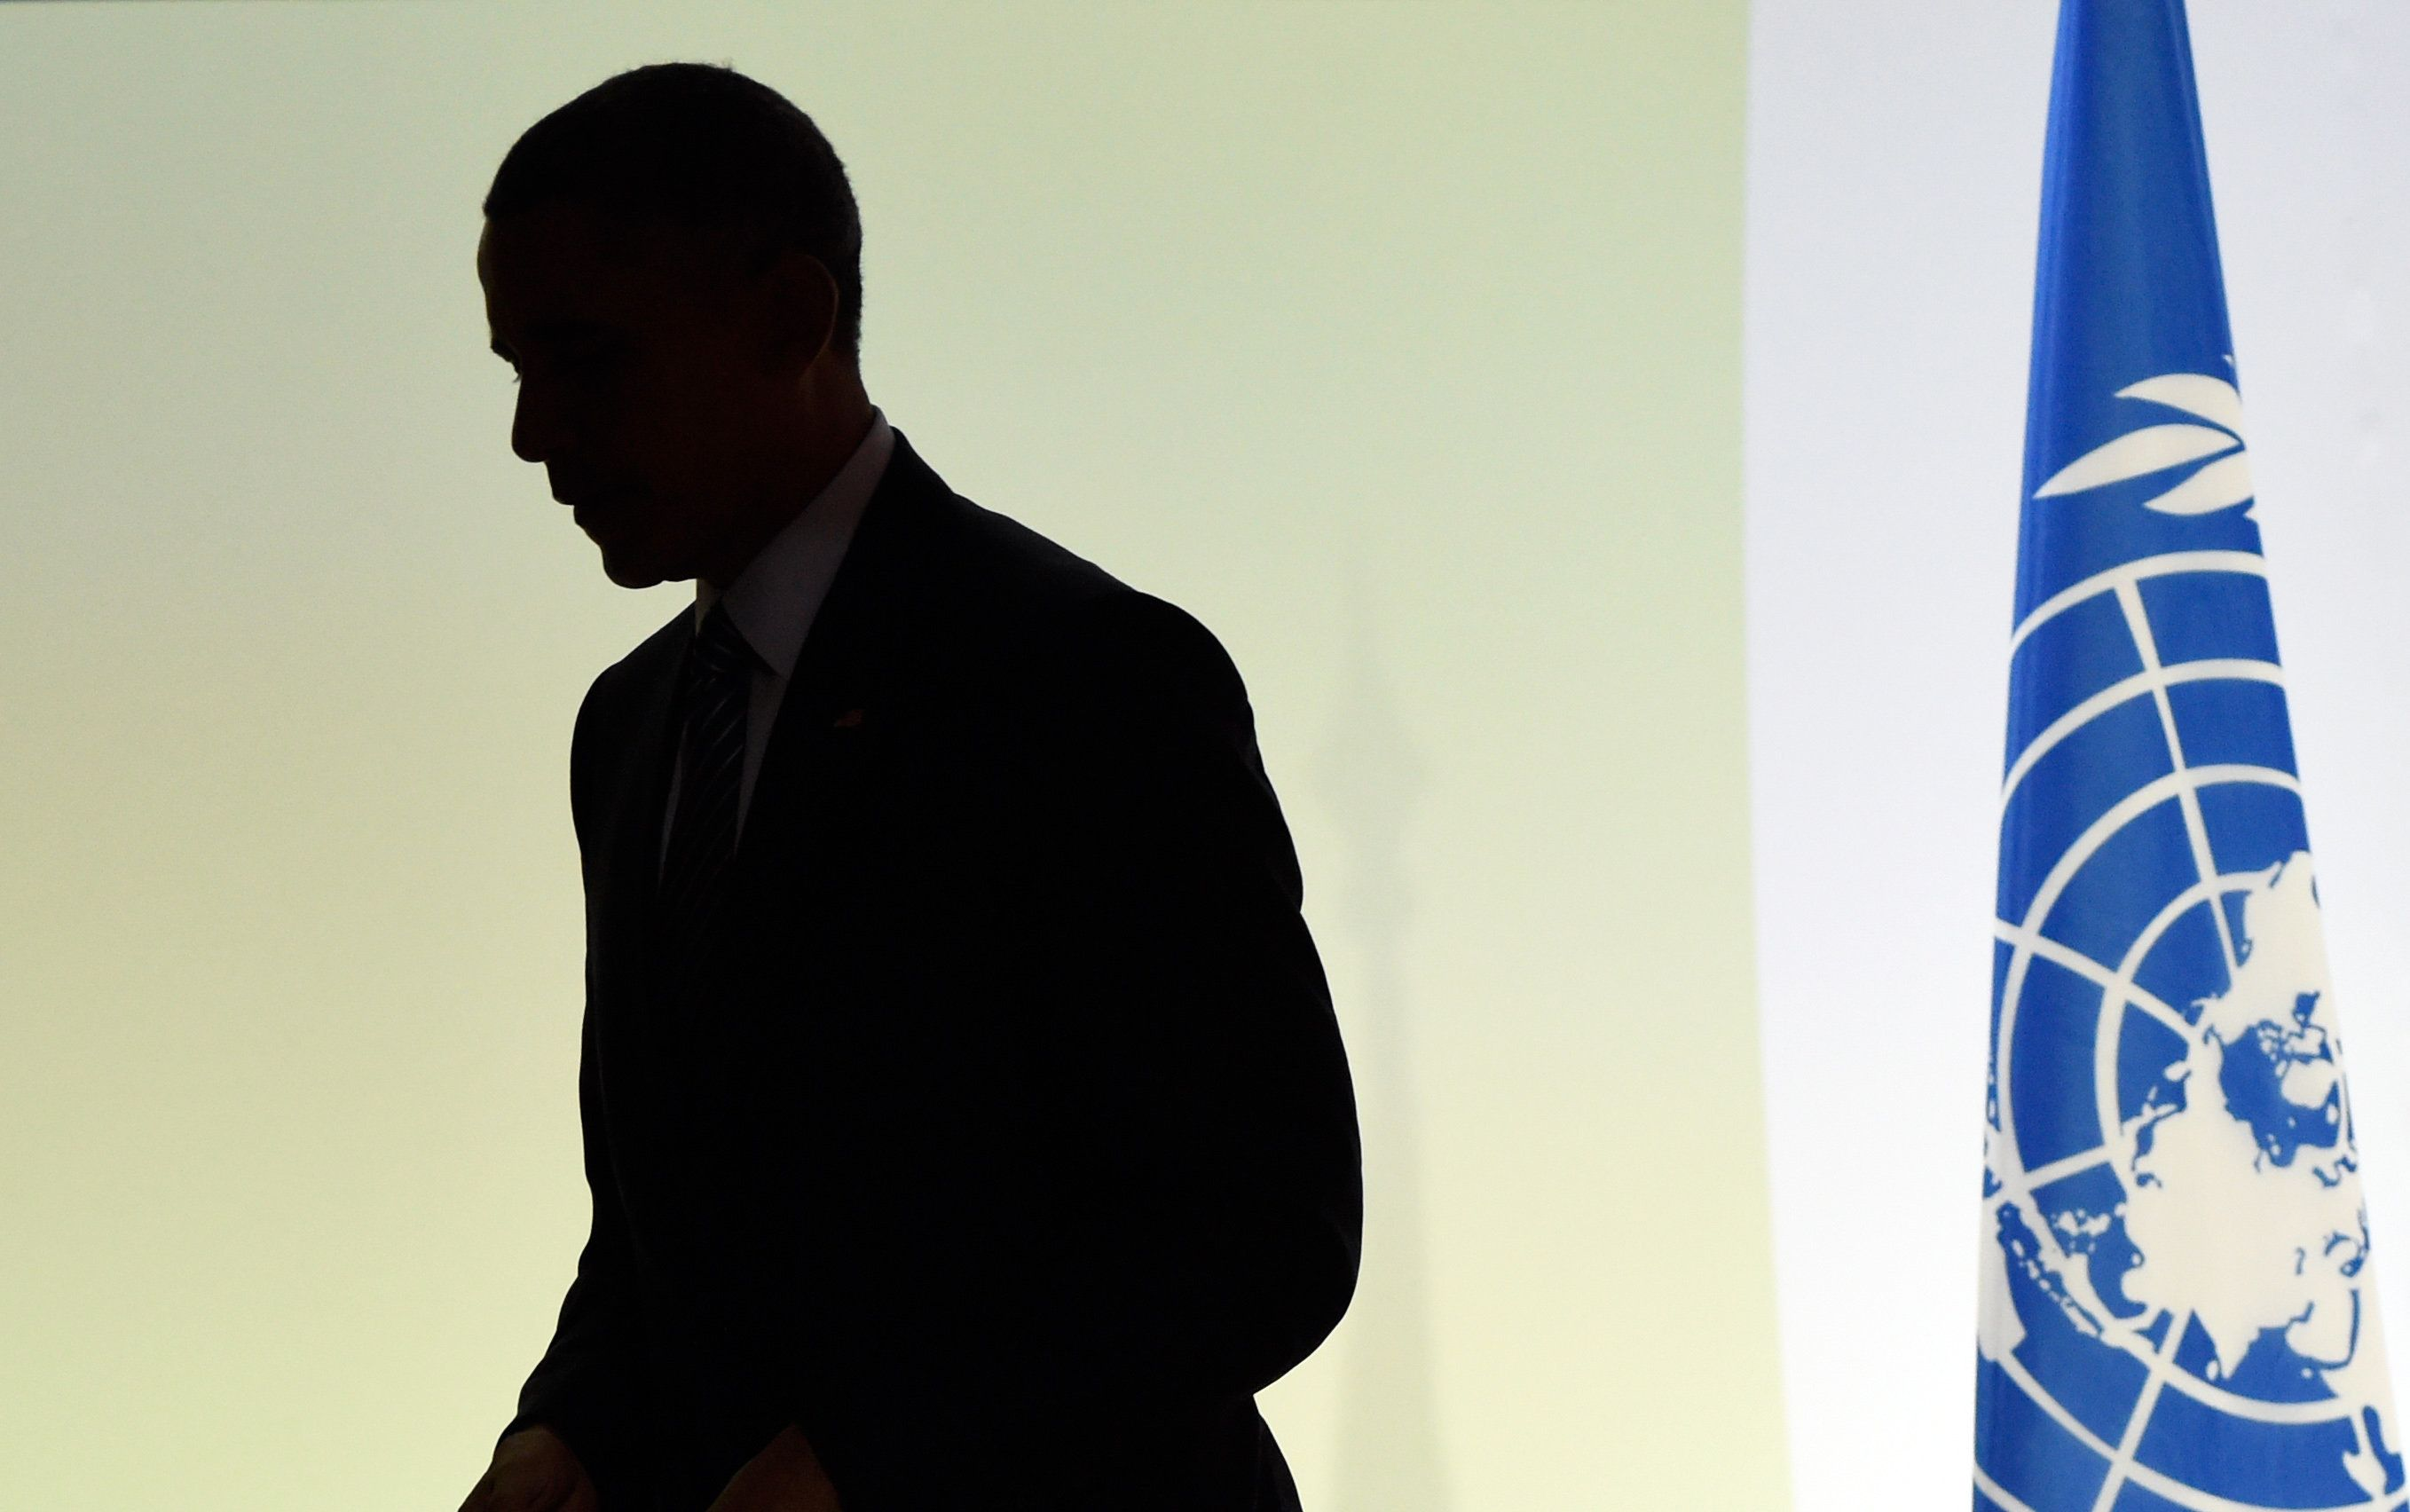 US President Barack Obama arrives to deliver a speech at the COP 21 United Nations conference on climate change, on November 30, 2015 at Le Bourget, on the outskirts of the French capital Paris.  More than 150 world leaders are meeting under heightened security,  for the 21st Session of the Conference of the Parties to the United Nations Framework Convention on Climate Change (COP21/CMP11), also known as Paris 2015 from November 30 to December 11.  / AFP / ALAIN JOCARD        (Photo credit should read ALAIN JOCARD/AFP/Getty Images)